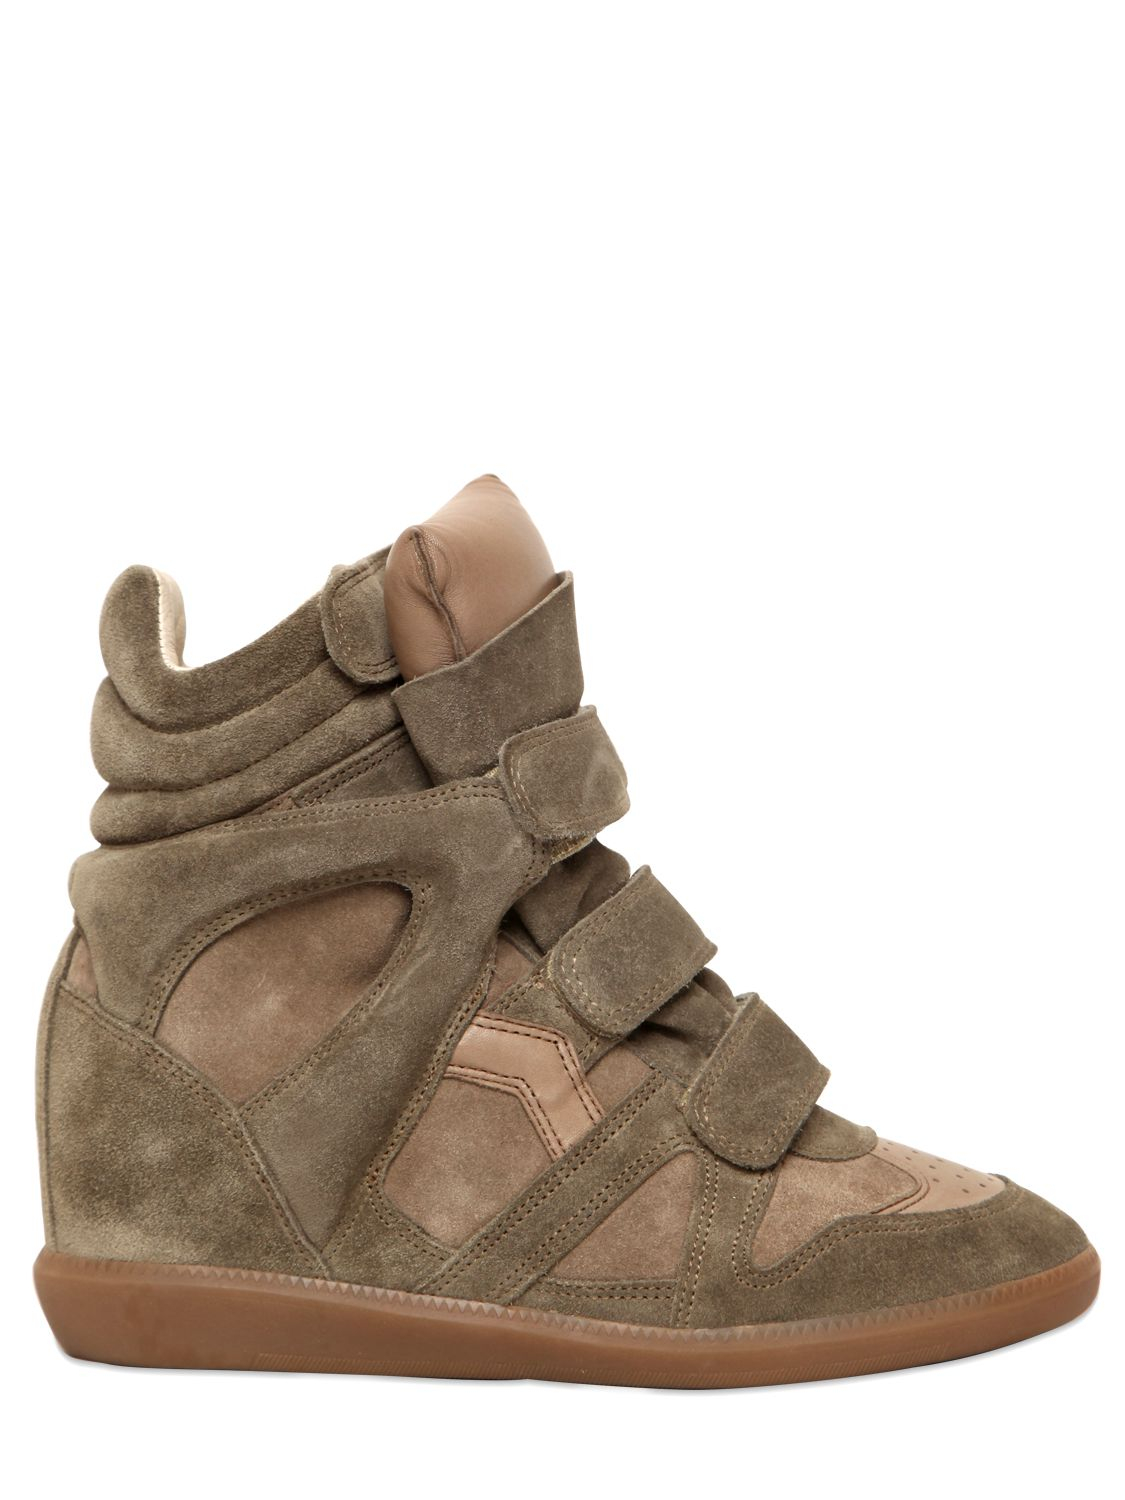 toile isabel marant bekett suede high top wedge sneakers in natural lyst. Black Bedroom Furniture Sets. Home Design Ideas